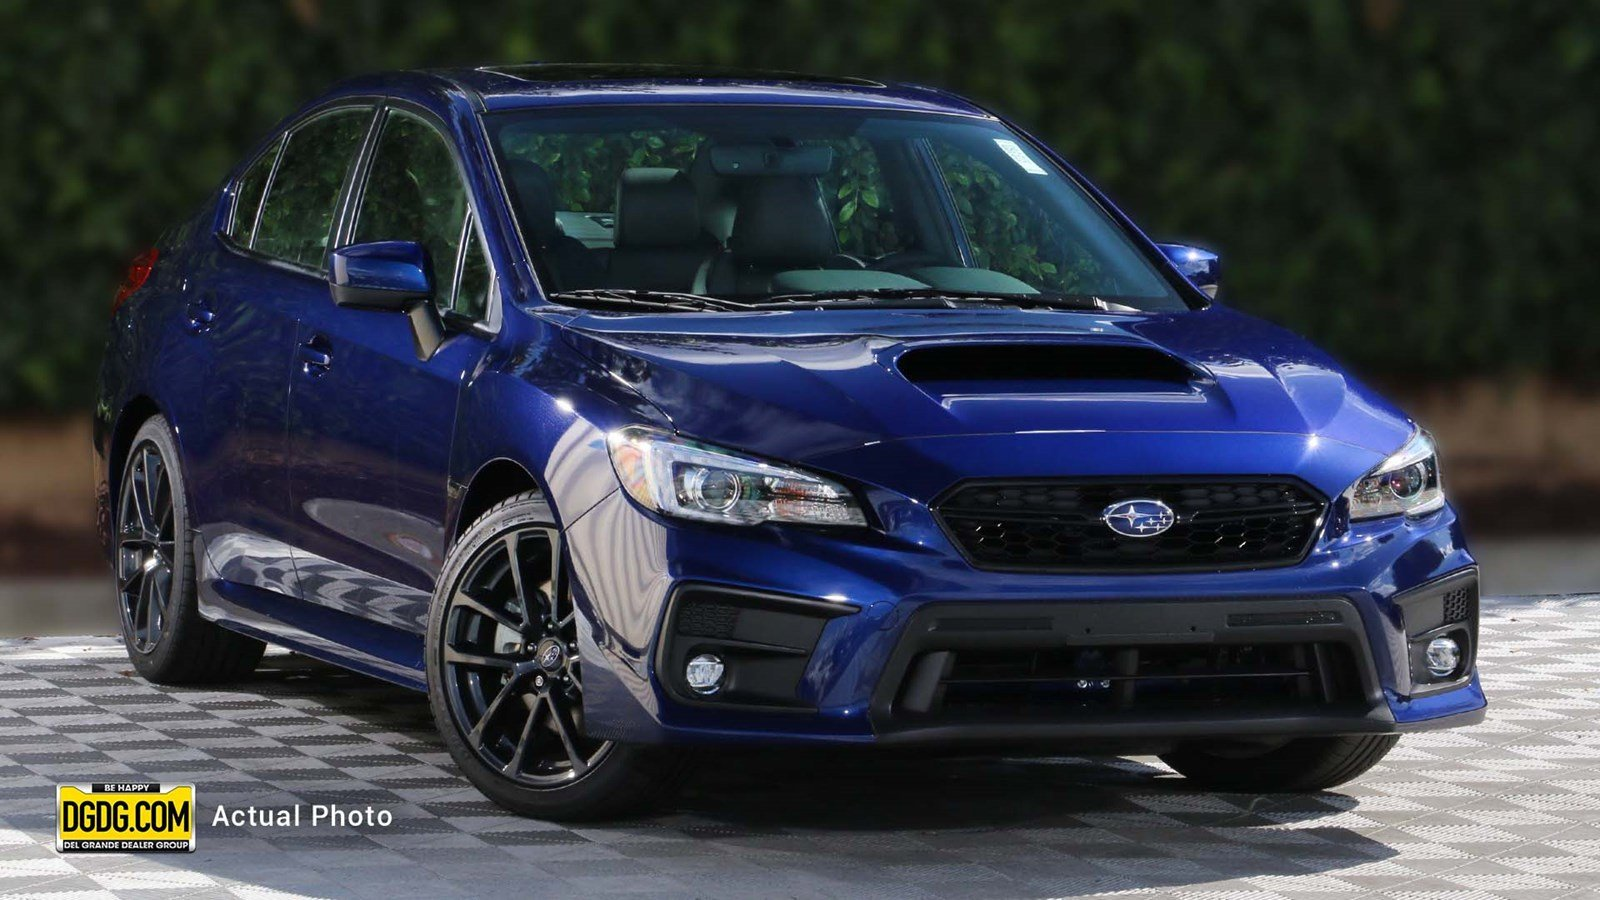 New 2019 Subaru Wrx Limited 4dr Car In San Jose S23360 Capitol Body Wiring Diagram For 1942 Chevrolet Two And Four Door Sedans